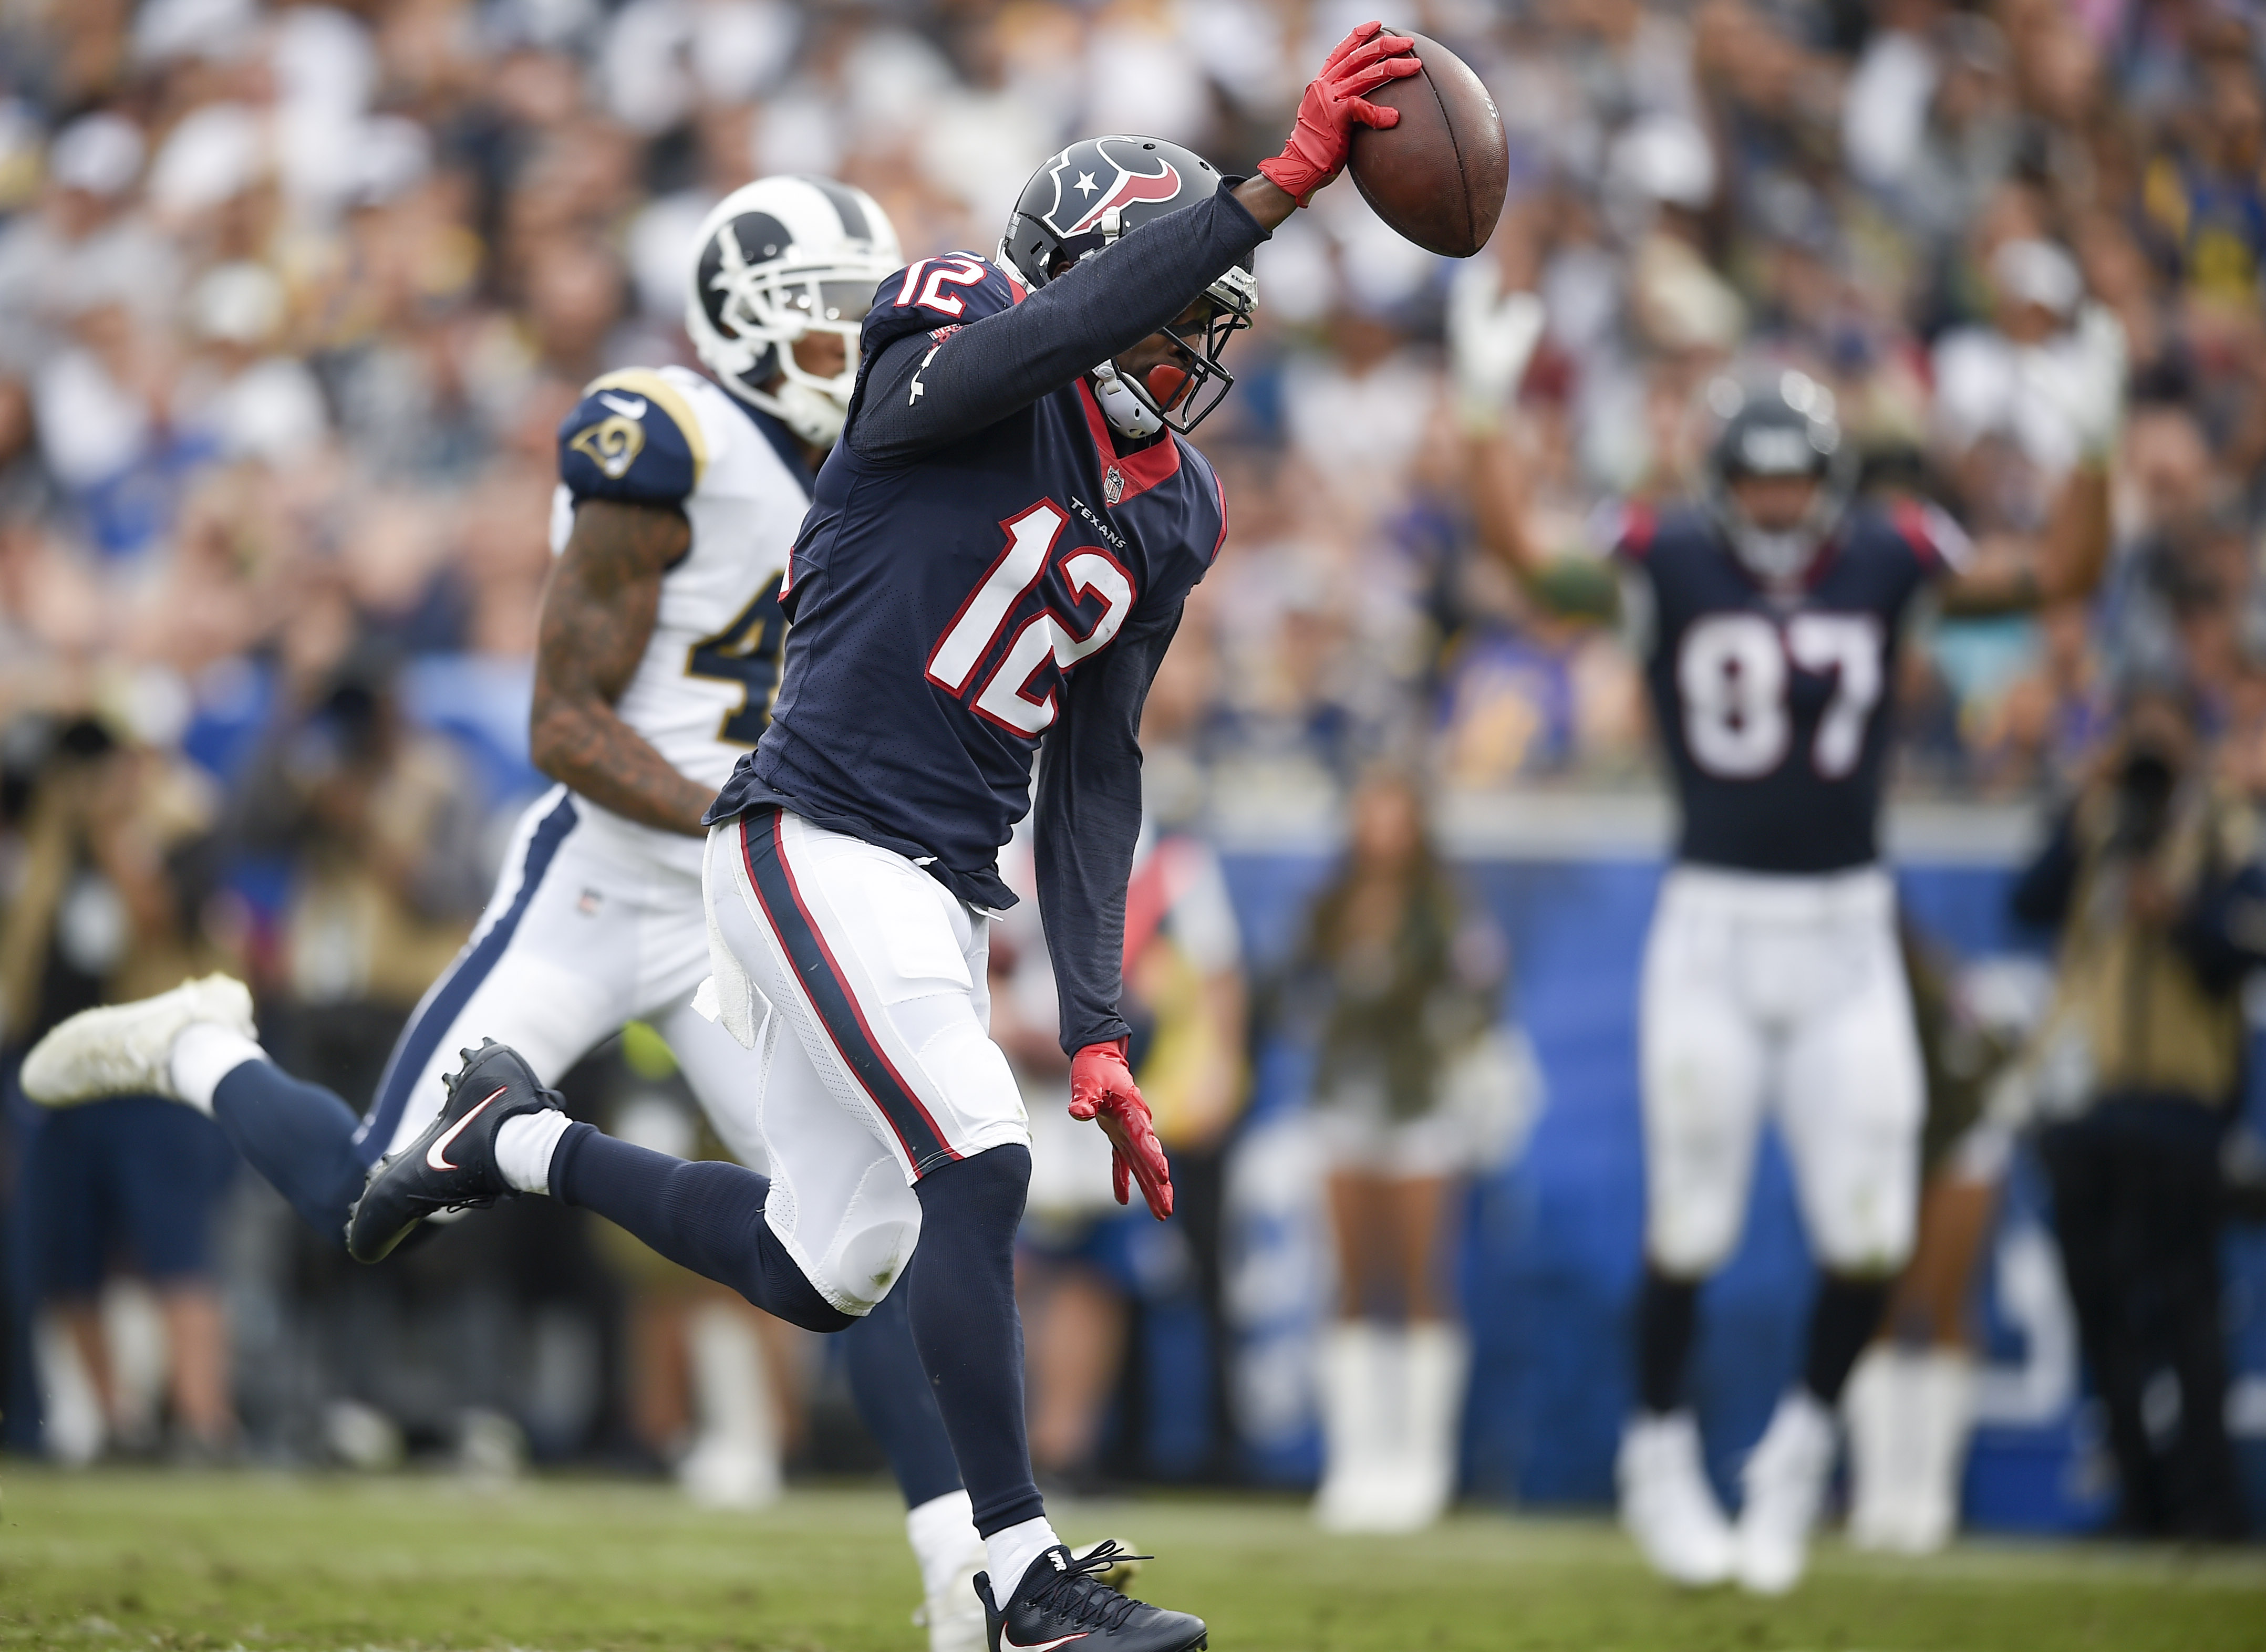 Nov 12, 2017; Los Angeles, CA, USA; Houston Texans wide receiver Bruce Ellington (12) runs in a catch for a touchdown against the Los Angeles Rams during the second quarter at Los Angeles Memorial Coliseum. Mandatory Credit: Kelvin Kuo-USA TODAY Sports